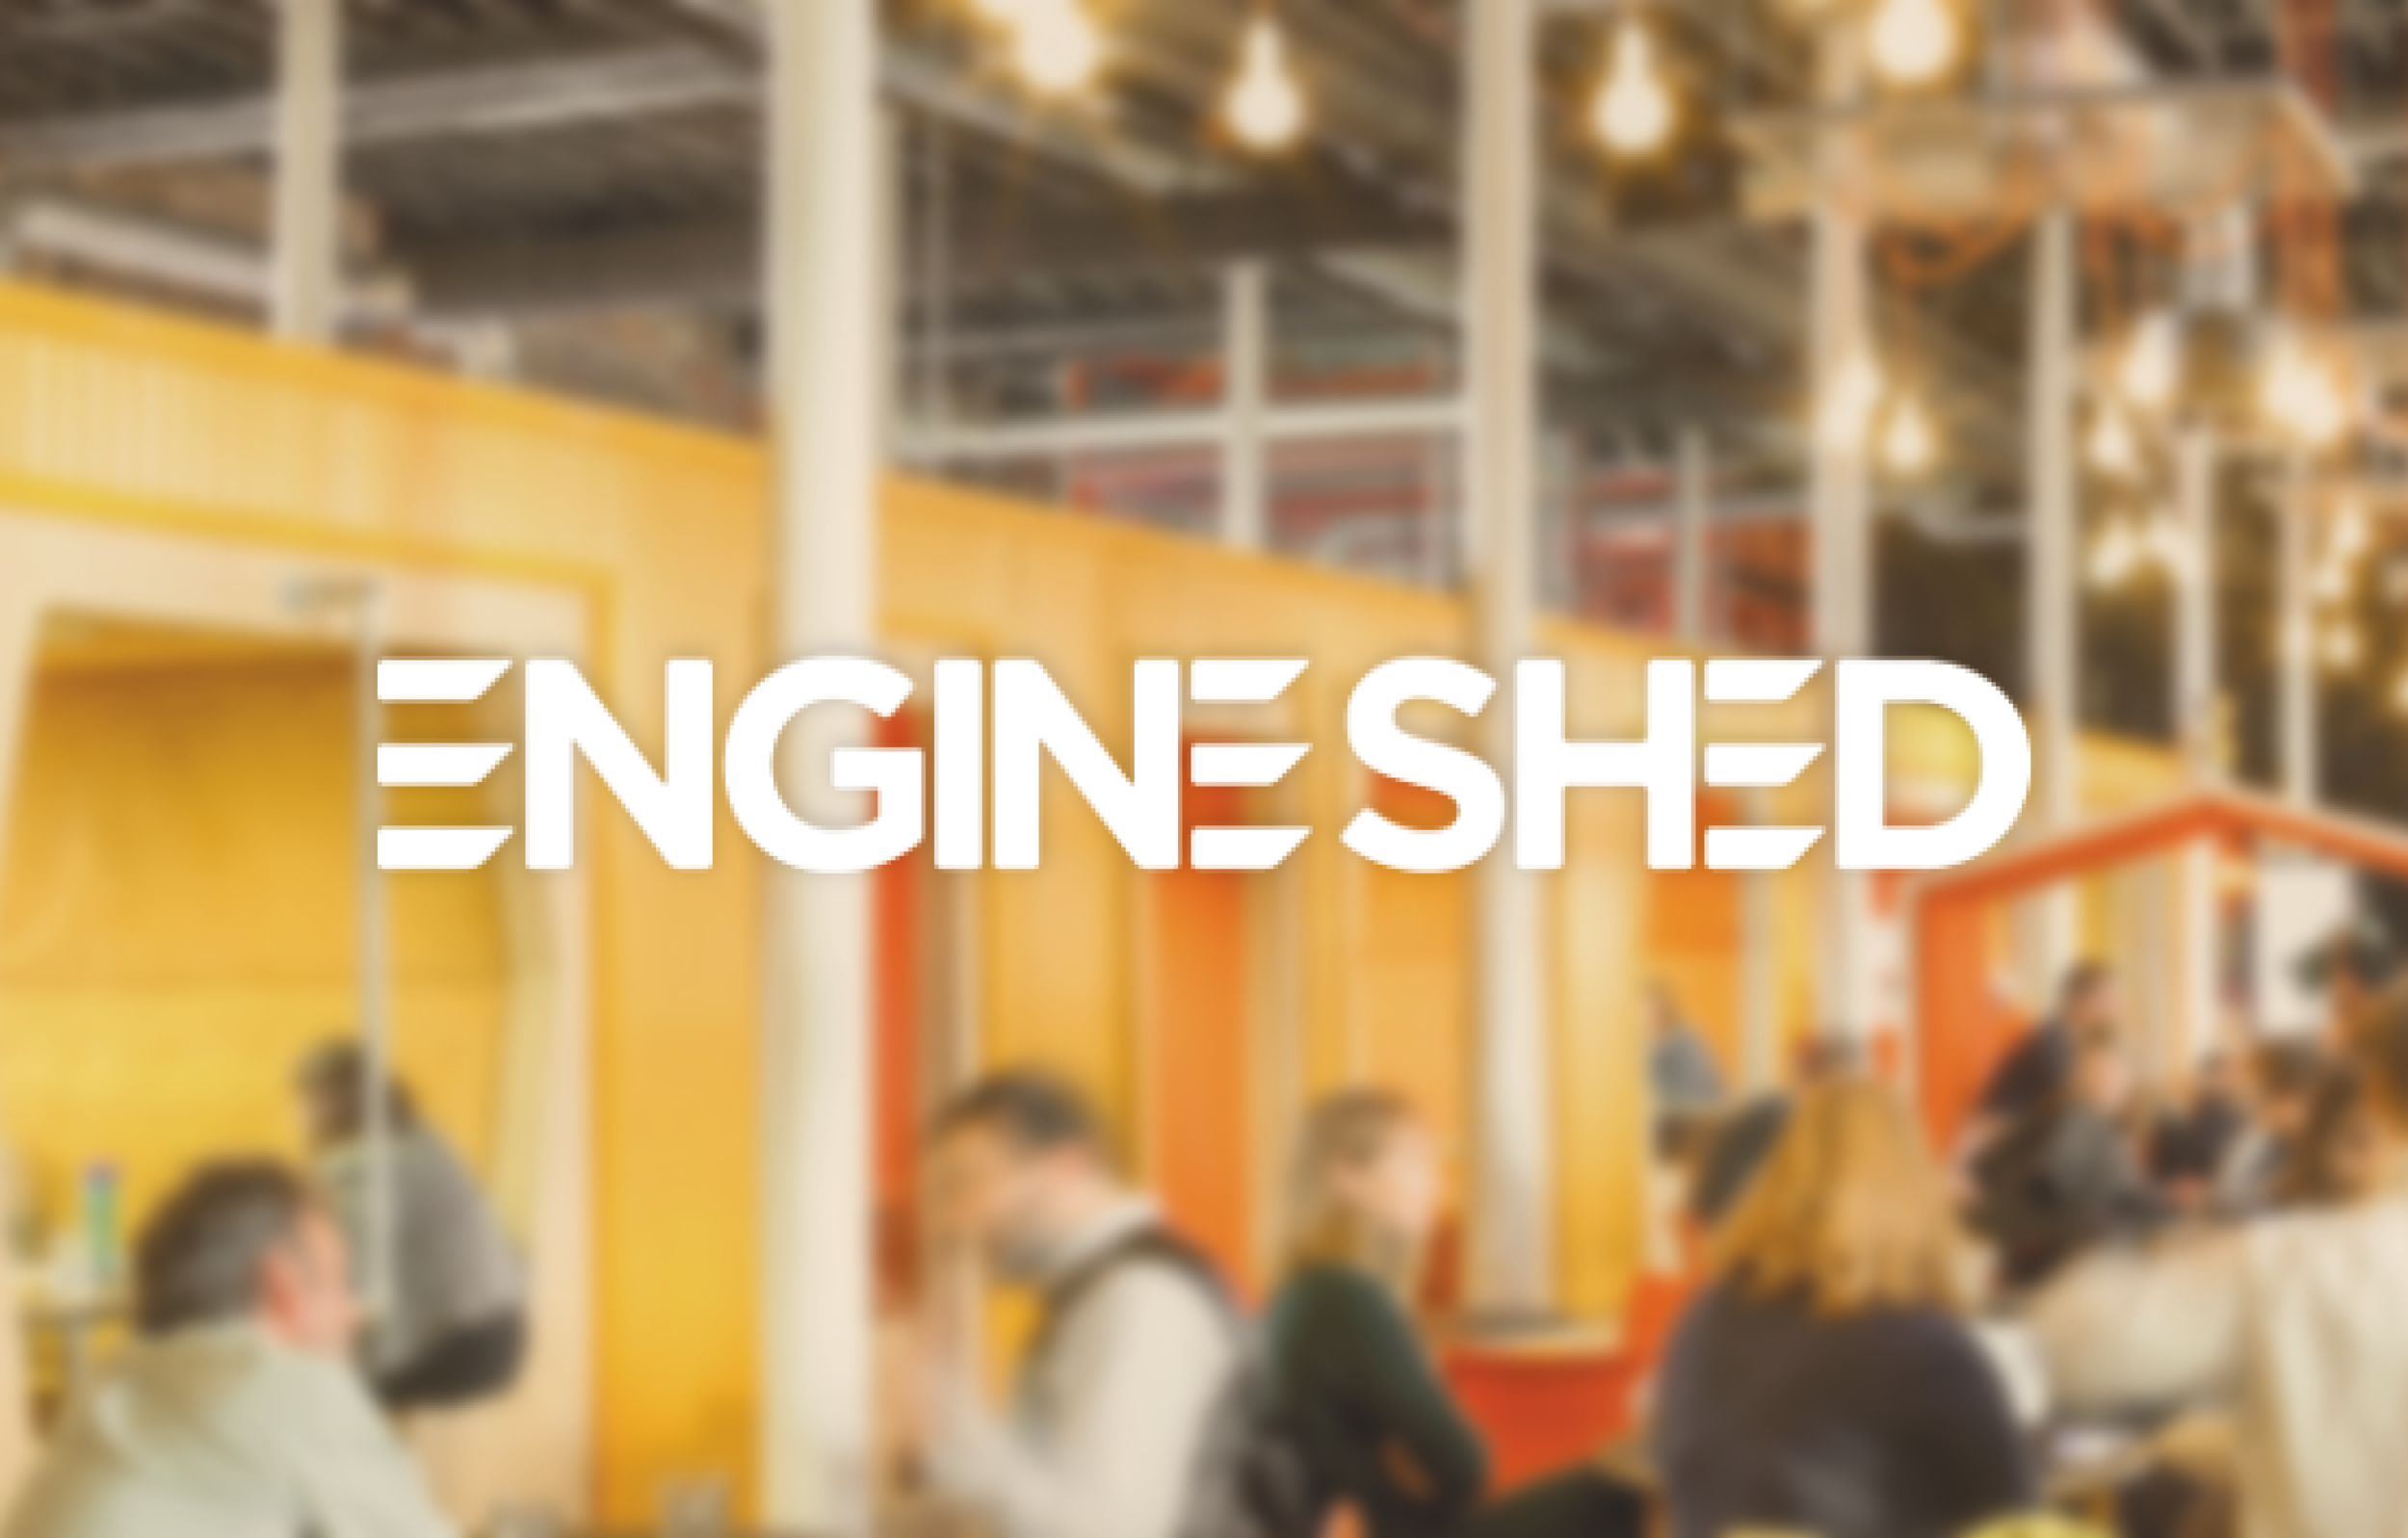 Engine Shed Case Study Thumbnail-01-01.png